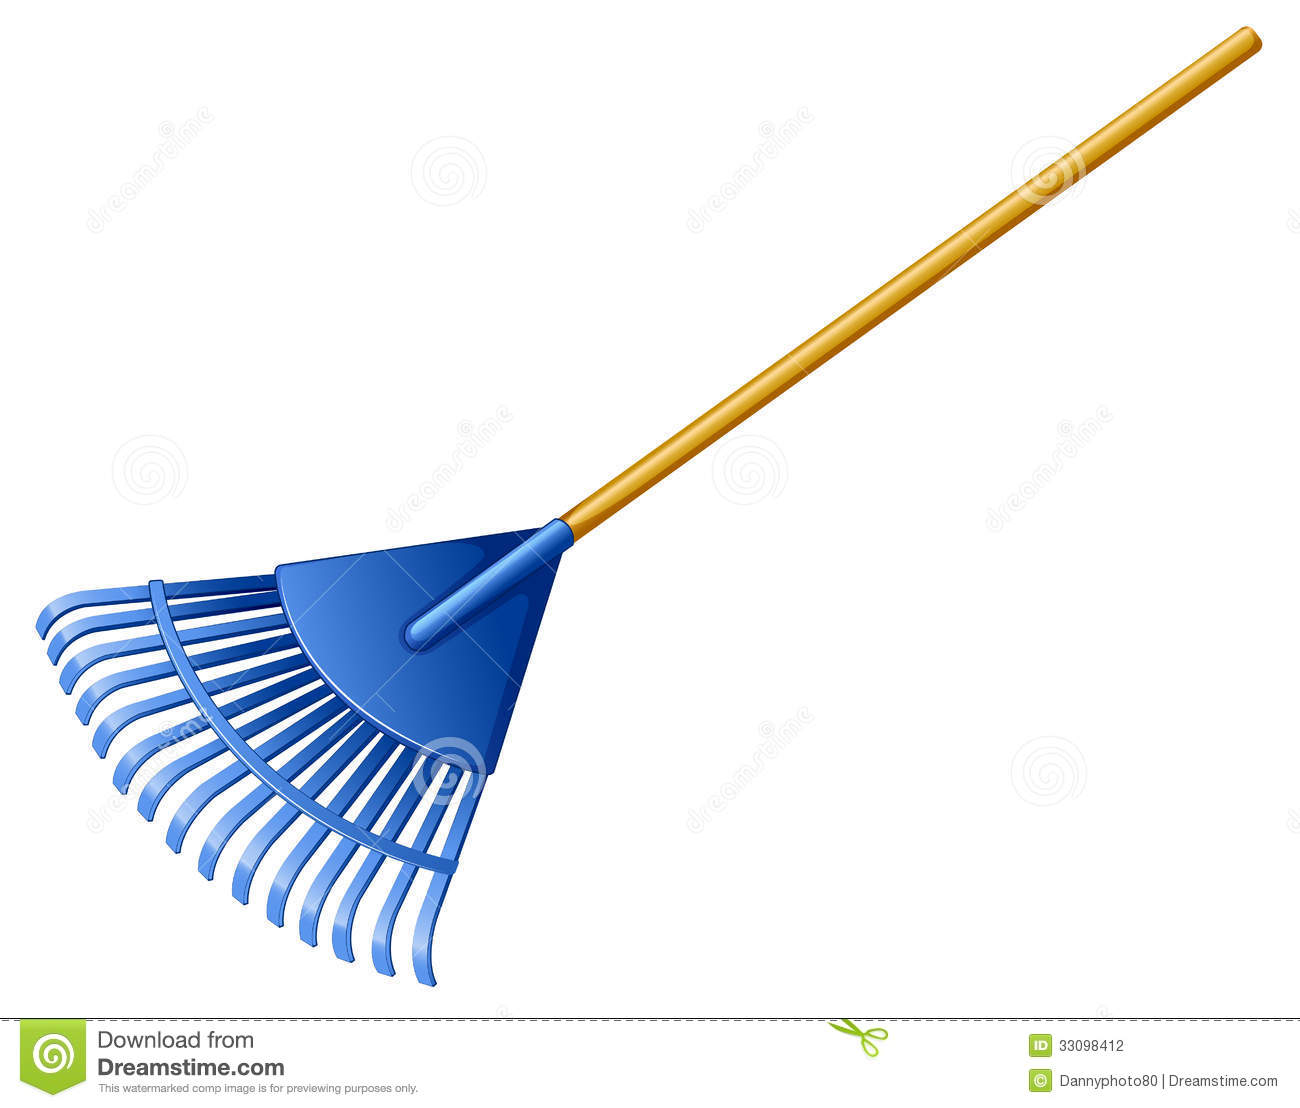 Illustration of a blue rake on a white background.